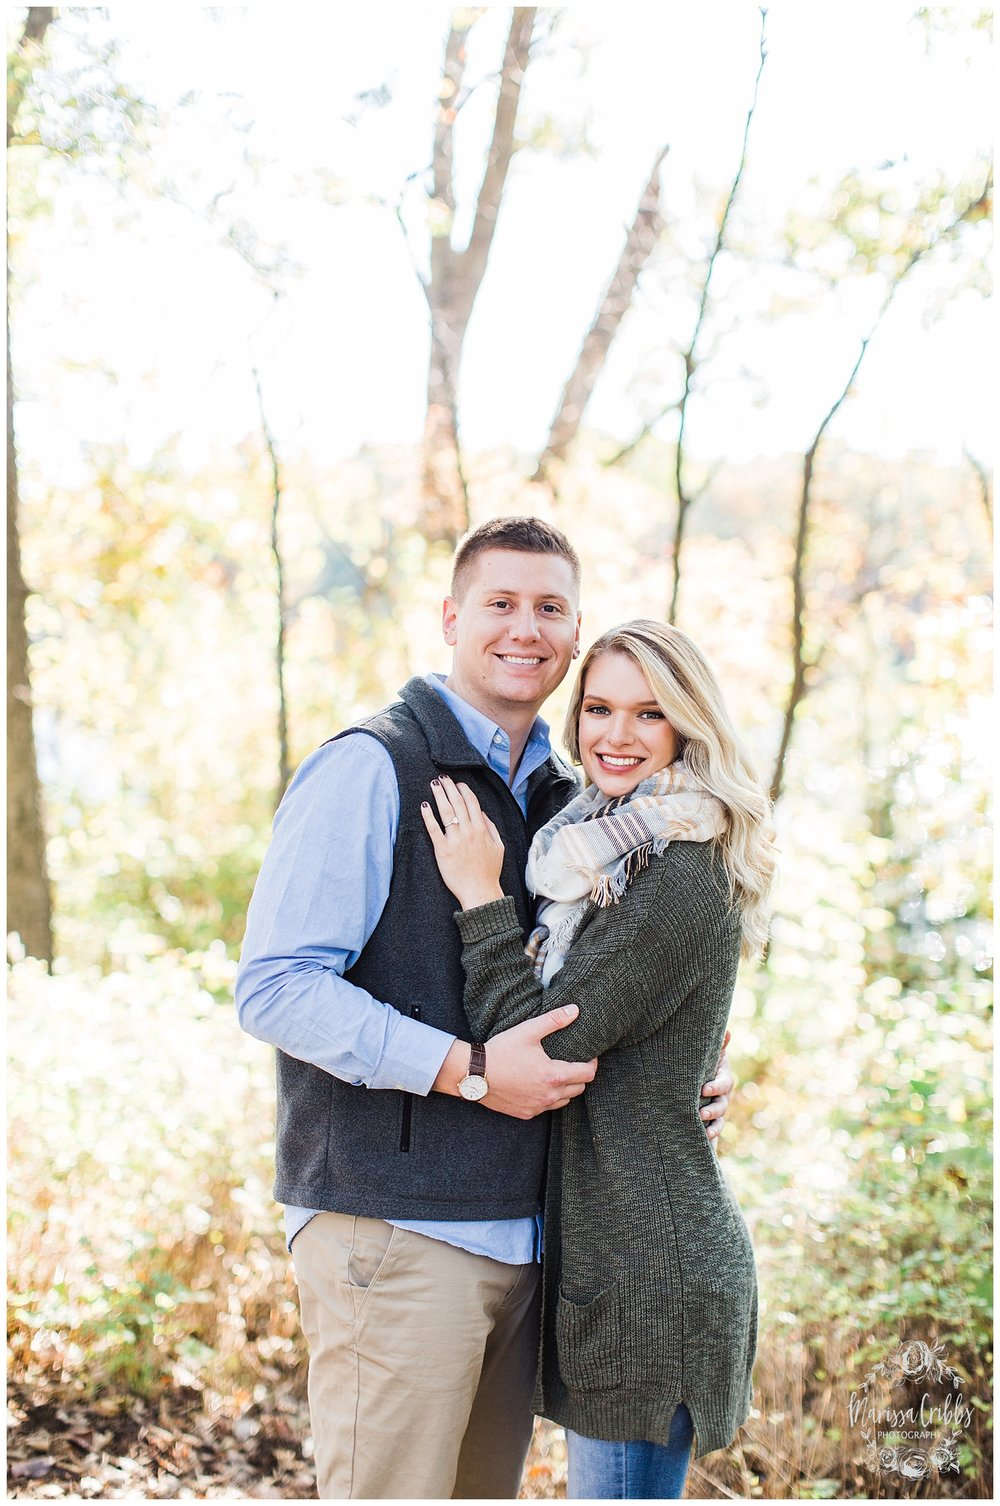 MORGAN HUGHES & RYAN ENGAGEMENT | KC ENGAGEMENT PHOTOS | MARISSA CRIBBS PHOTOGRAPHY_3385.jpg